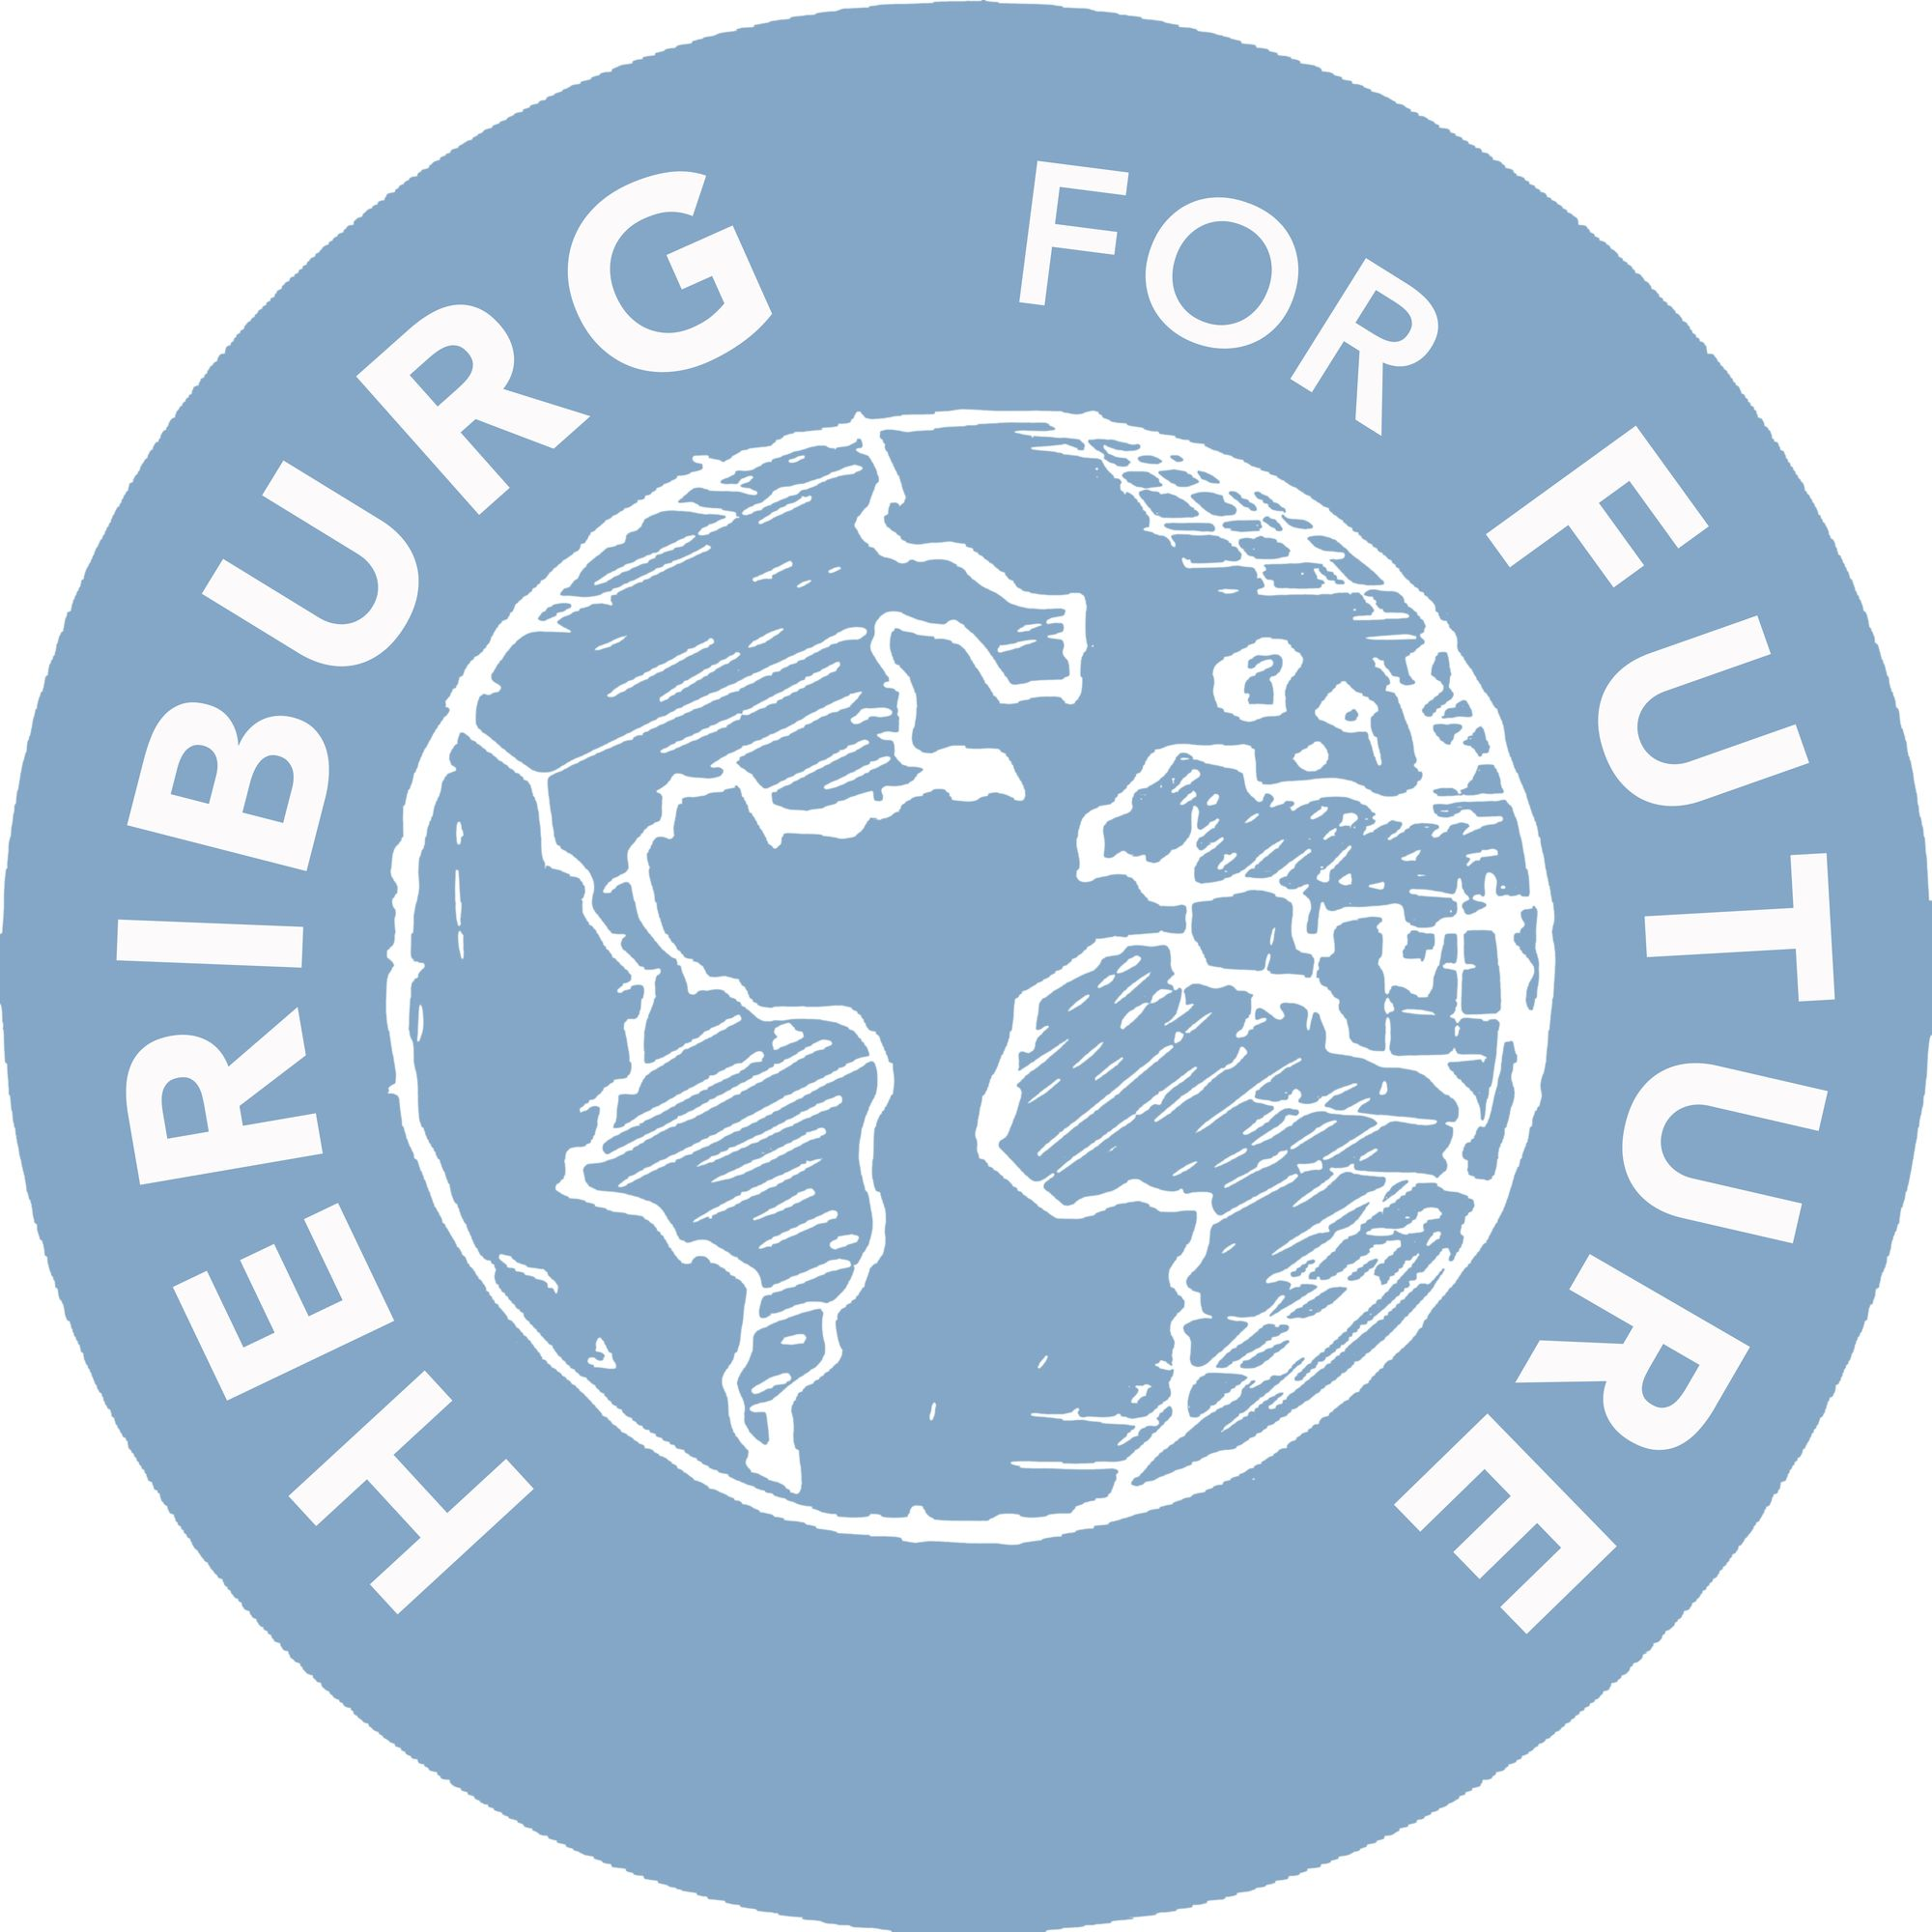 HERIBURG FOR FUTURE